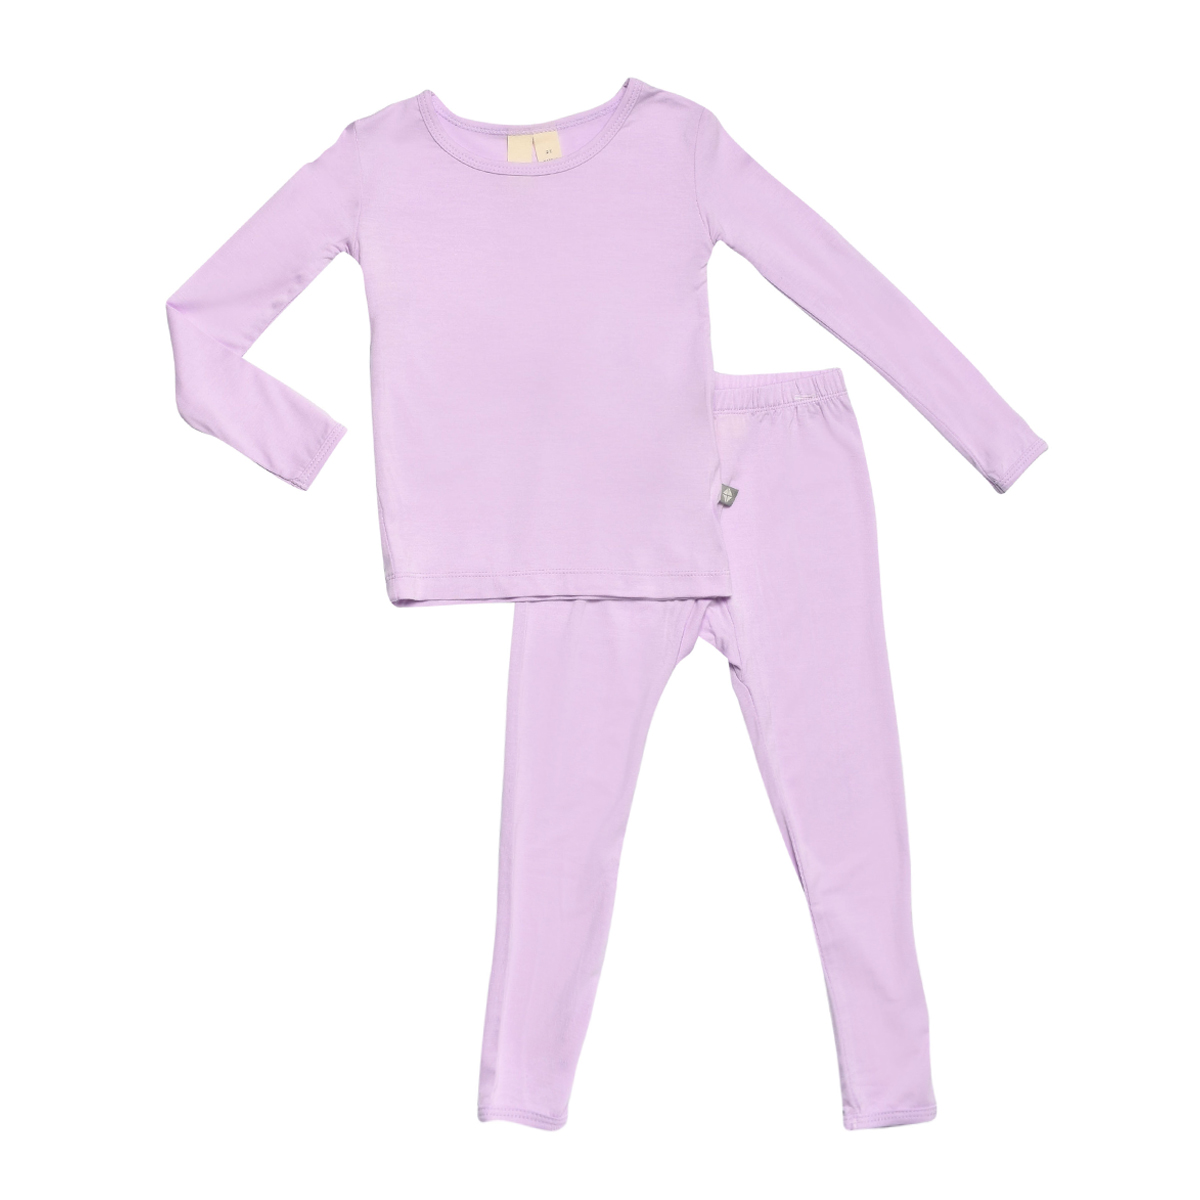 KYTE BABY Toddler Pajama Set Pjs for Toddlers Made of Soft Bamboo Rayon Material